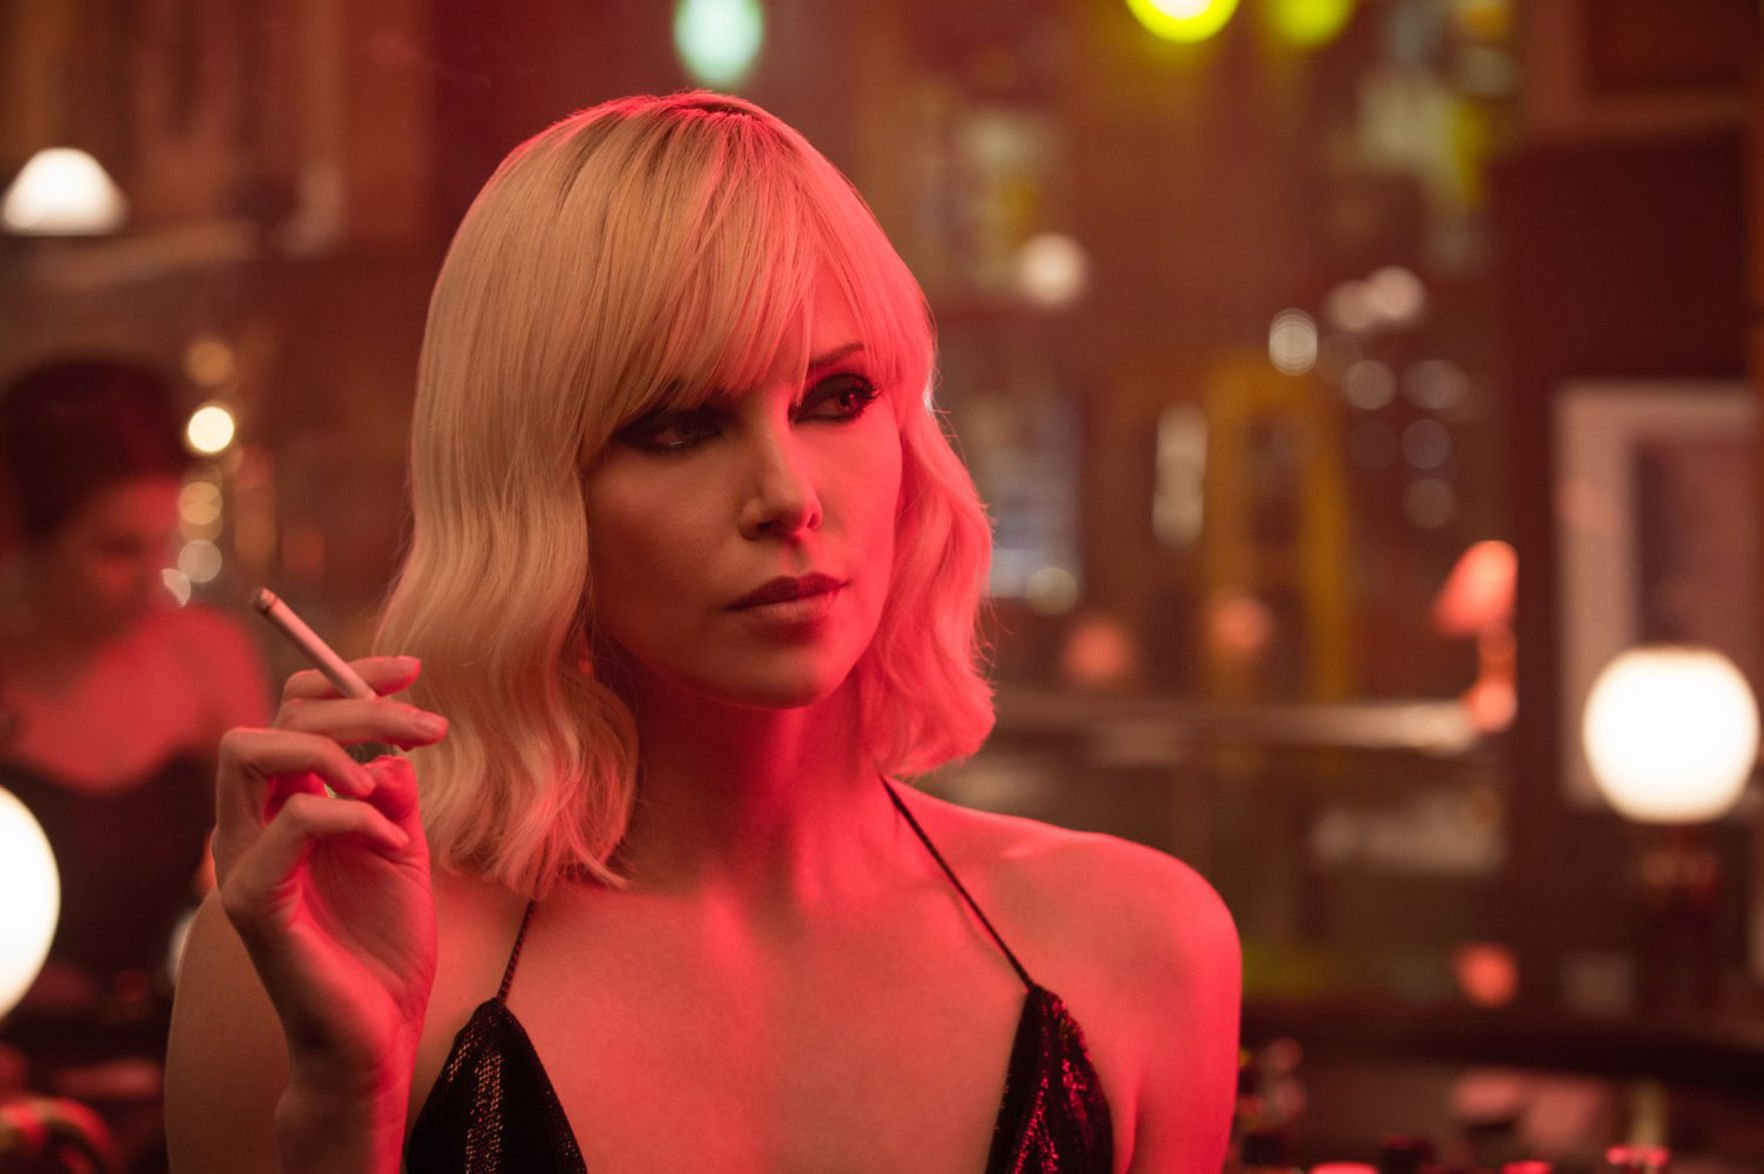 'Atomic Blonde' movie review - Male fantasies in the guise of feminism